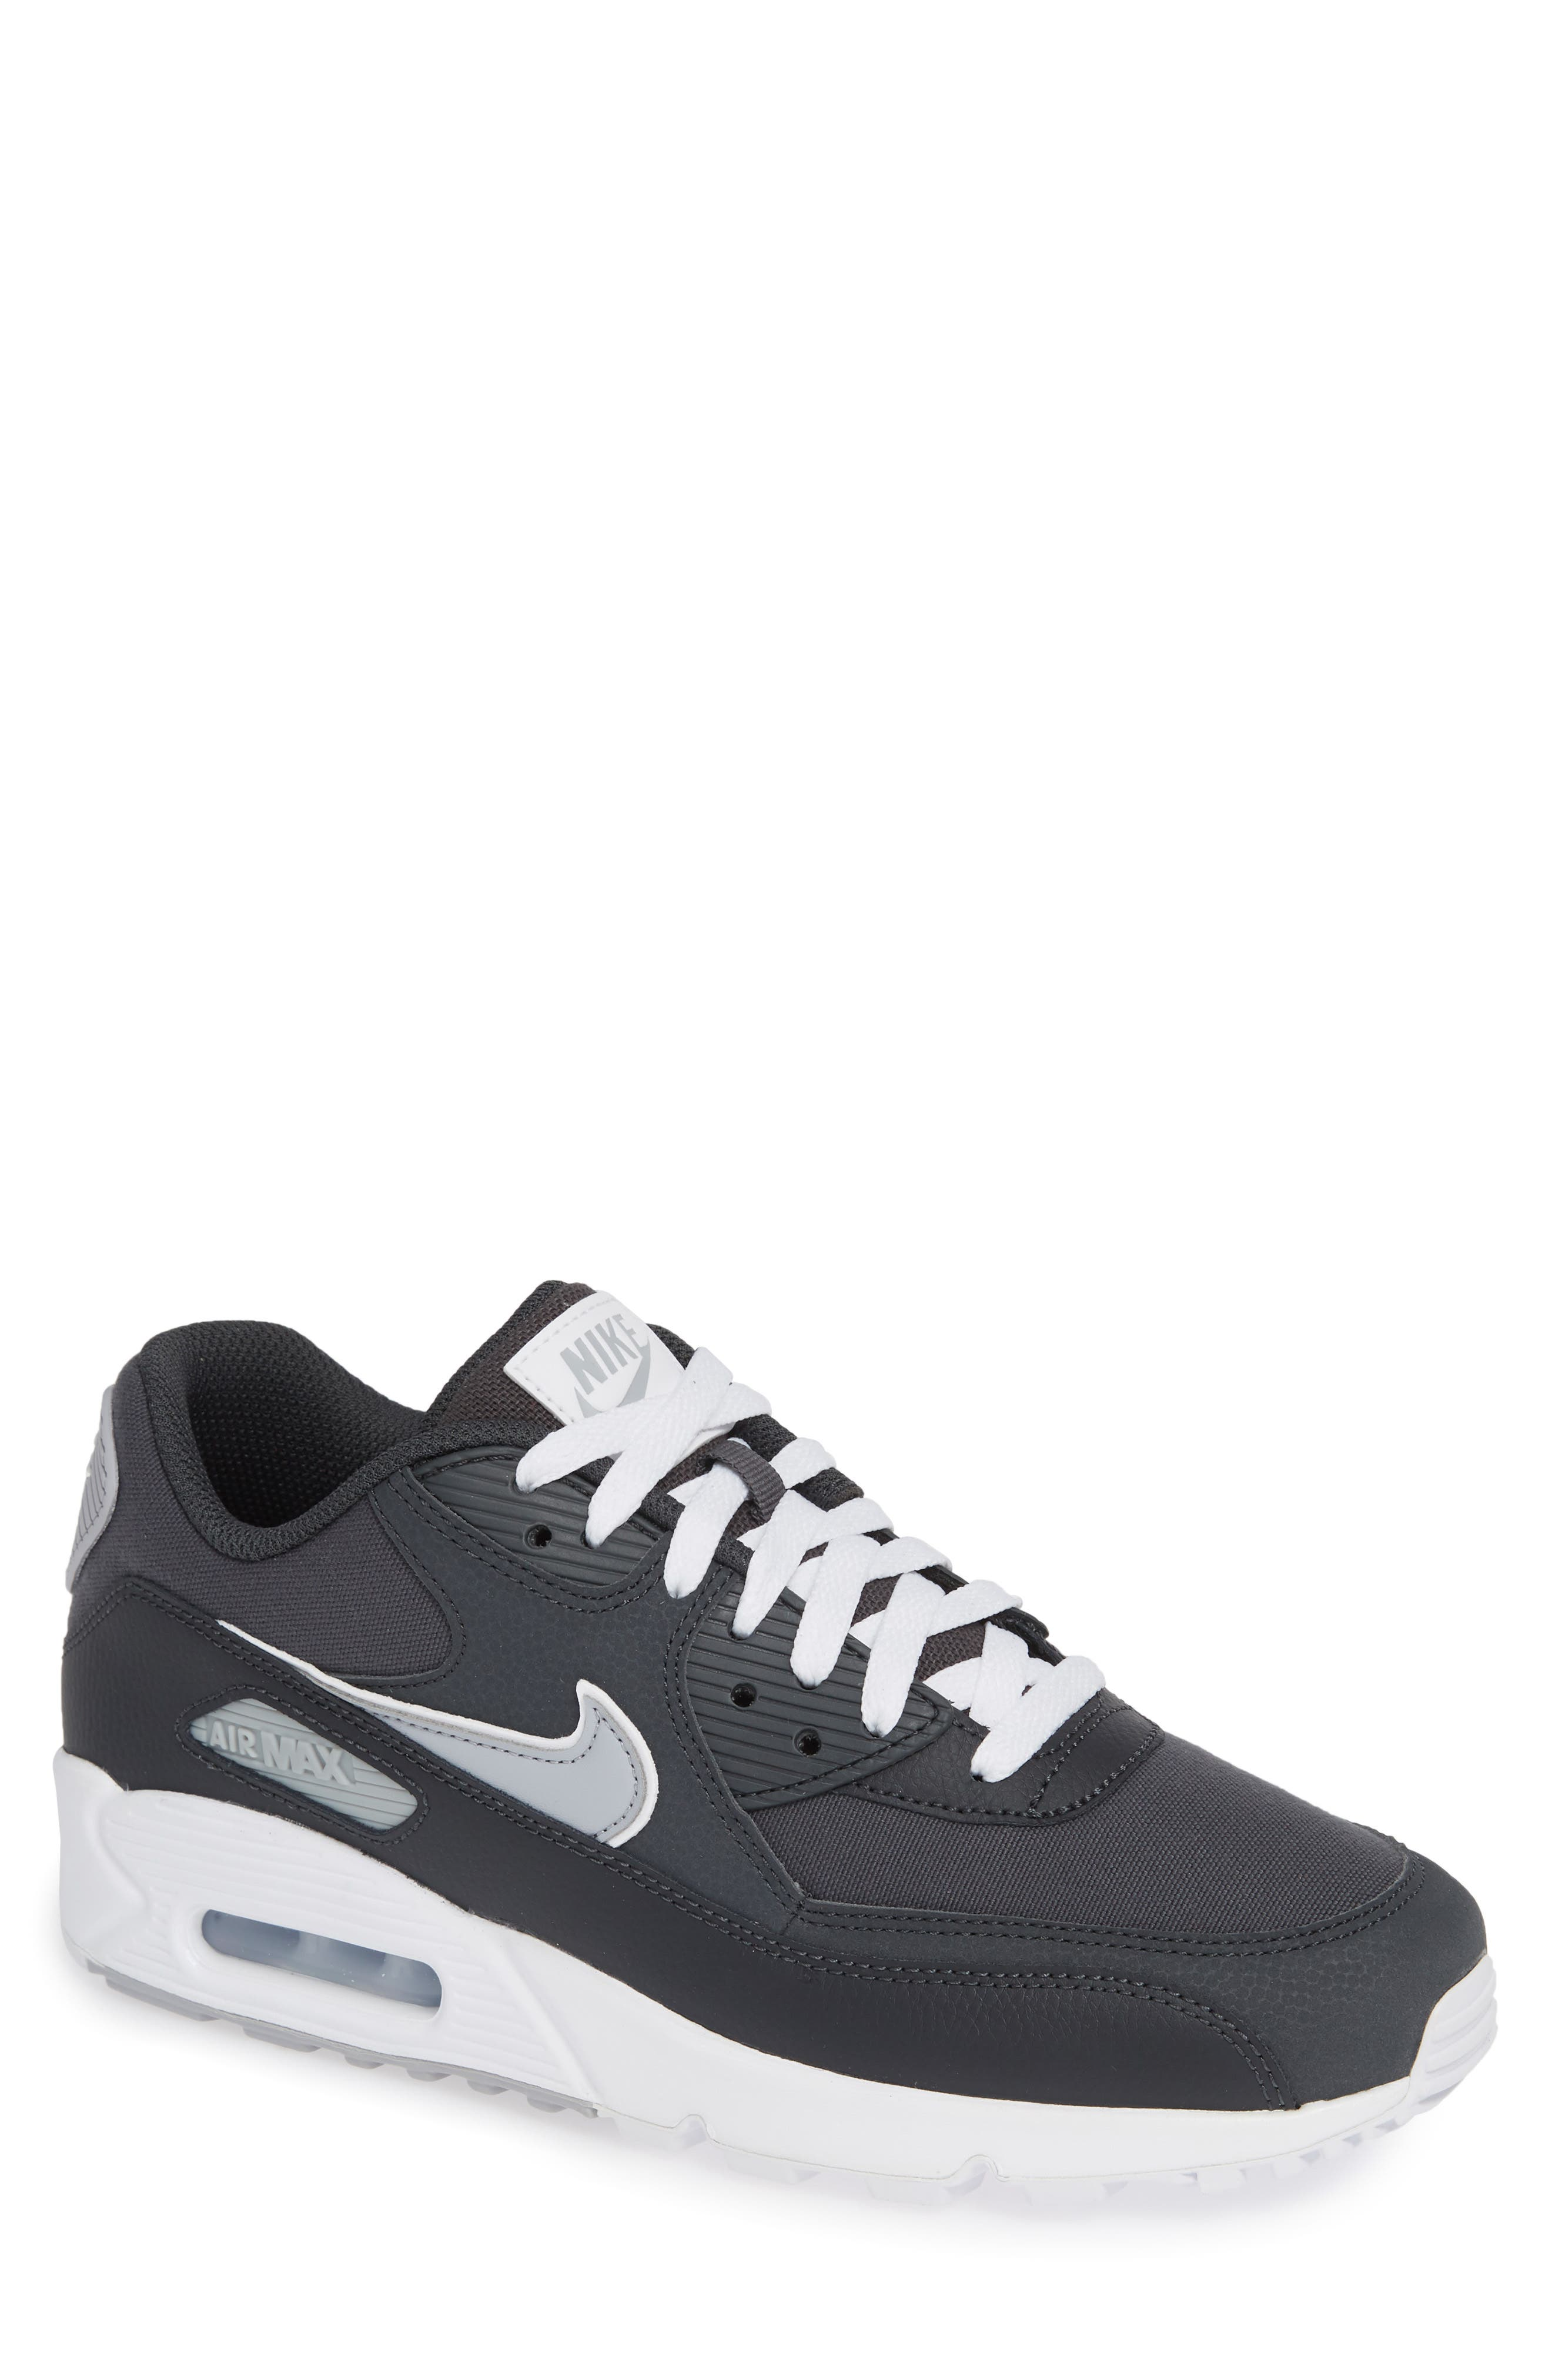 Air Max 90 Essential Sneaker,                             Main thumbnail 1, color,                             ANTHRACITE/ WOLF GREY/ WHITE